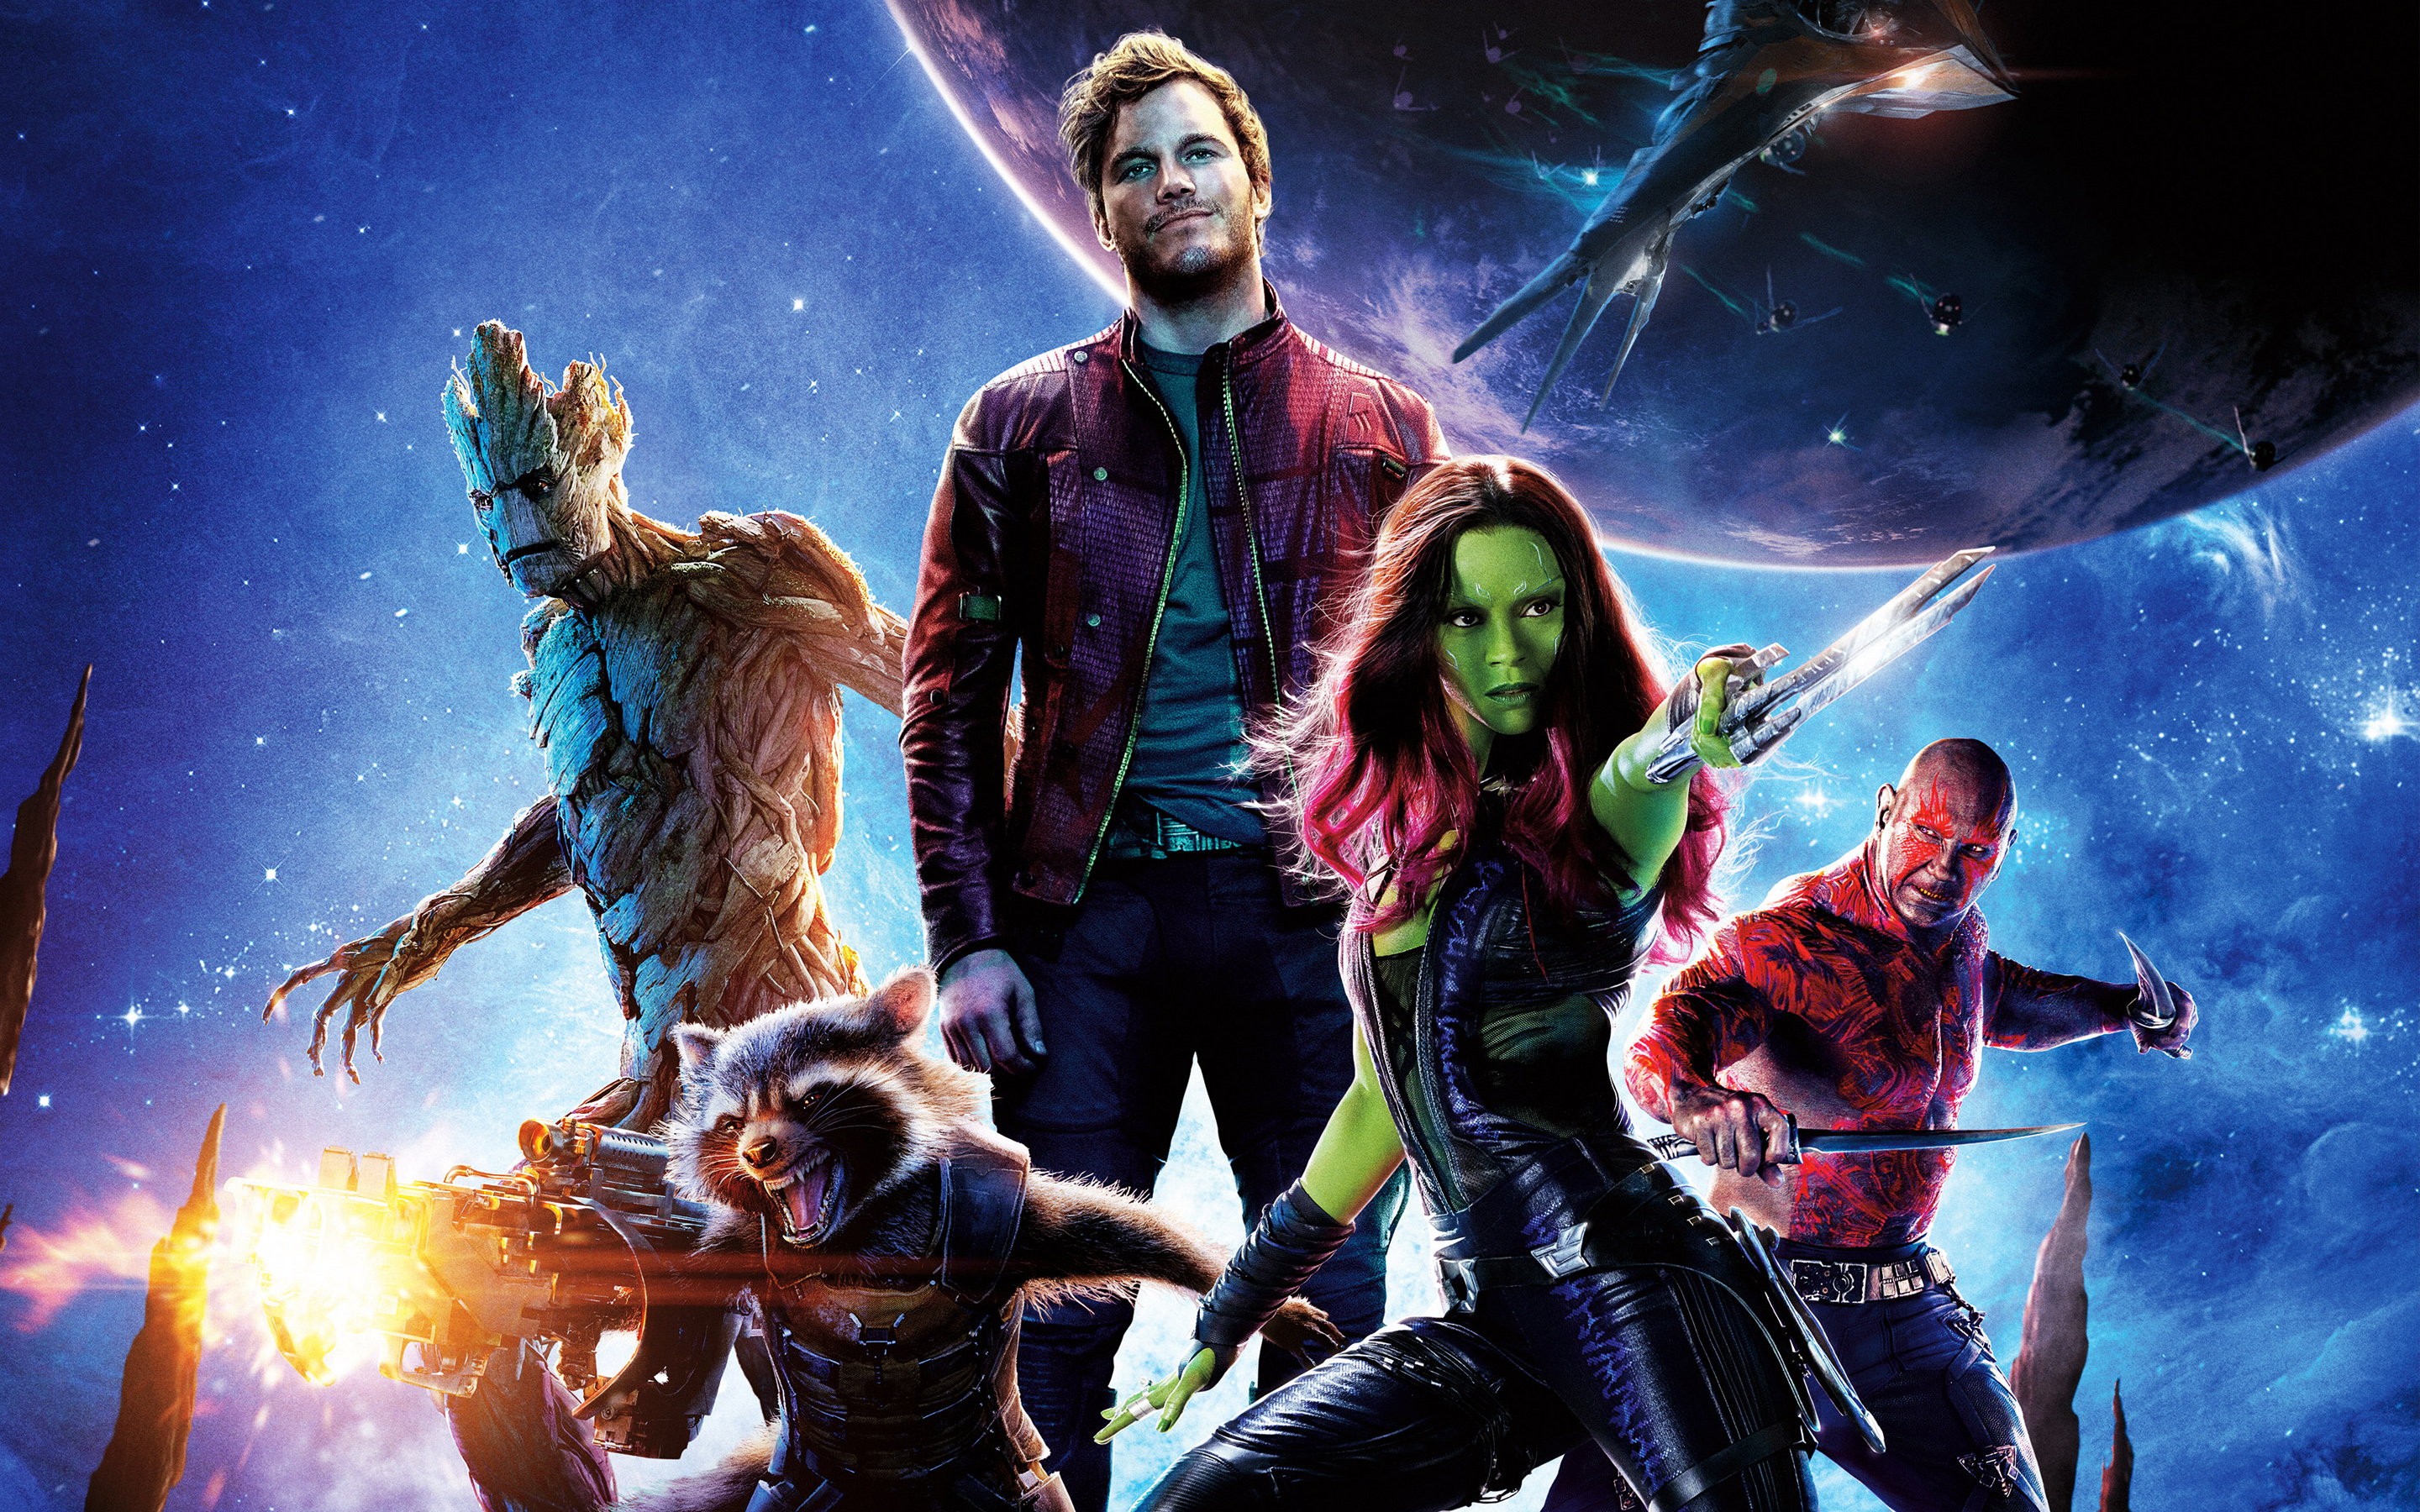 Will The Guardians Be Joining The Infinity War?